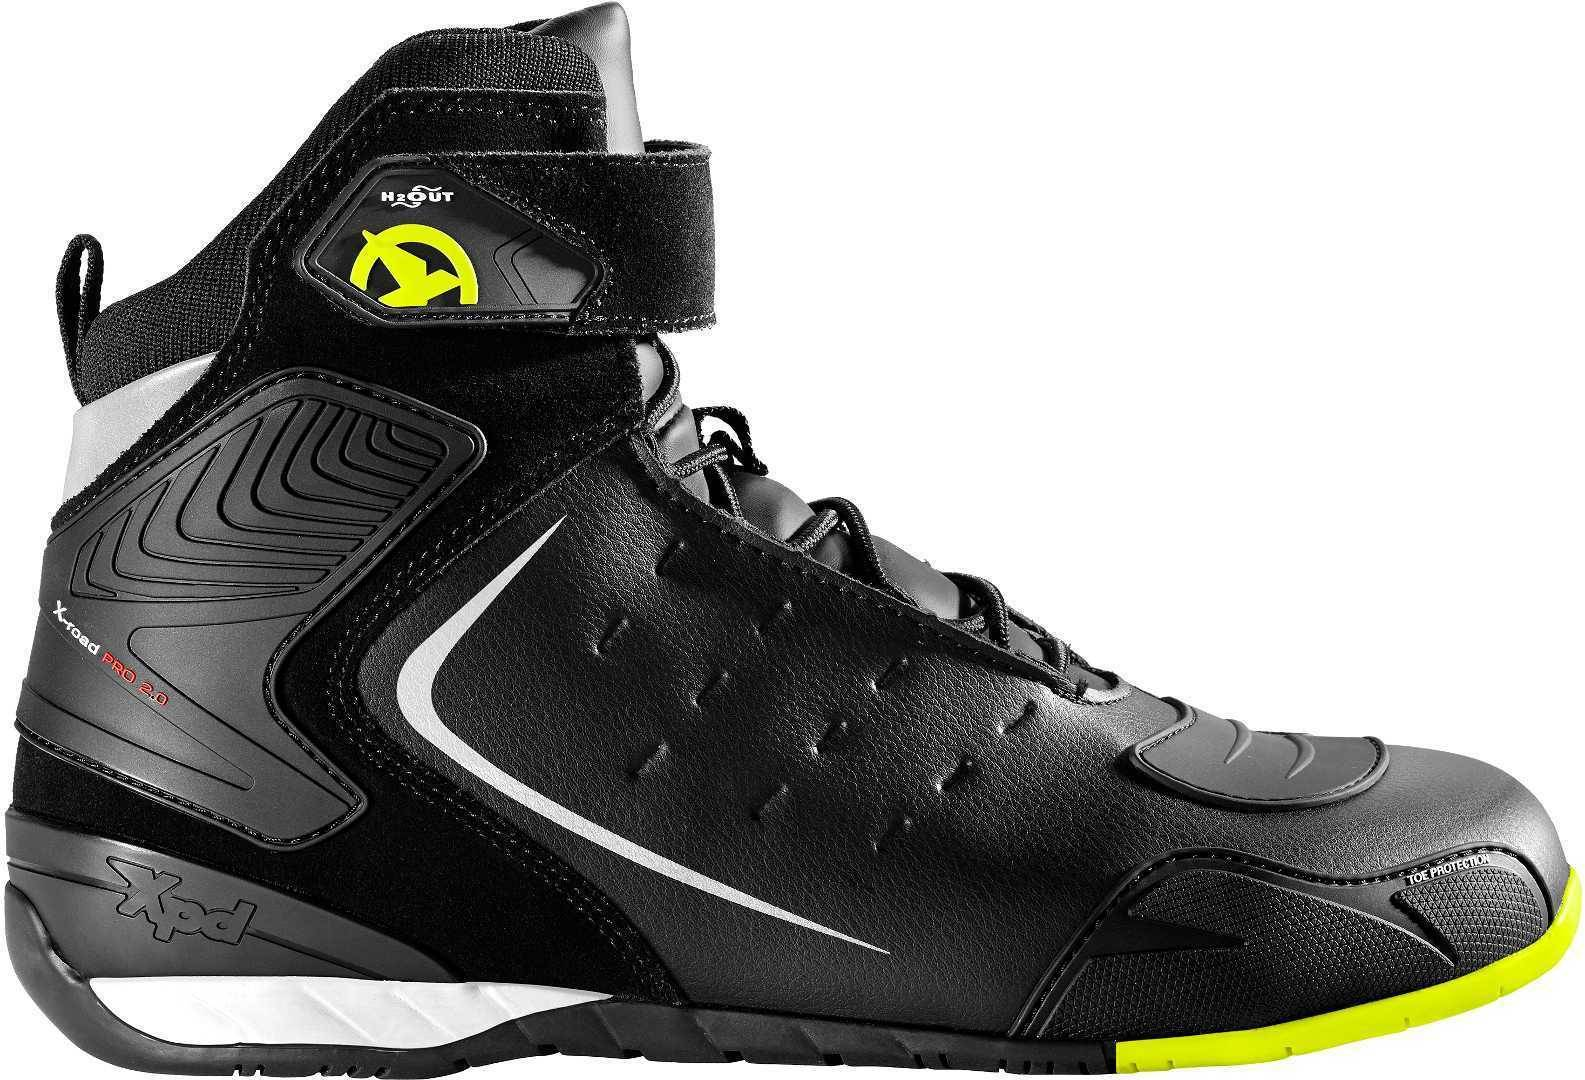 XPD X-Road H2Out Motorcycle Shoes Yellow 47